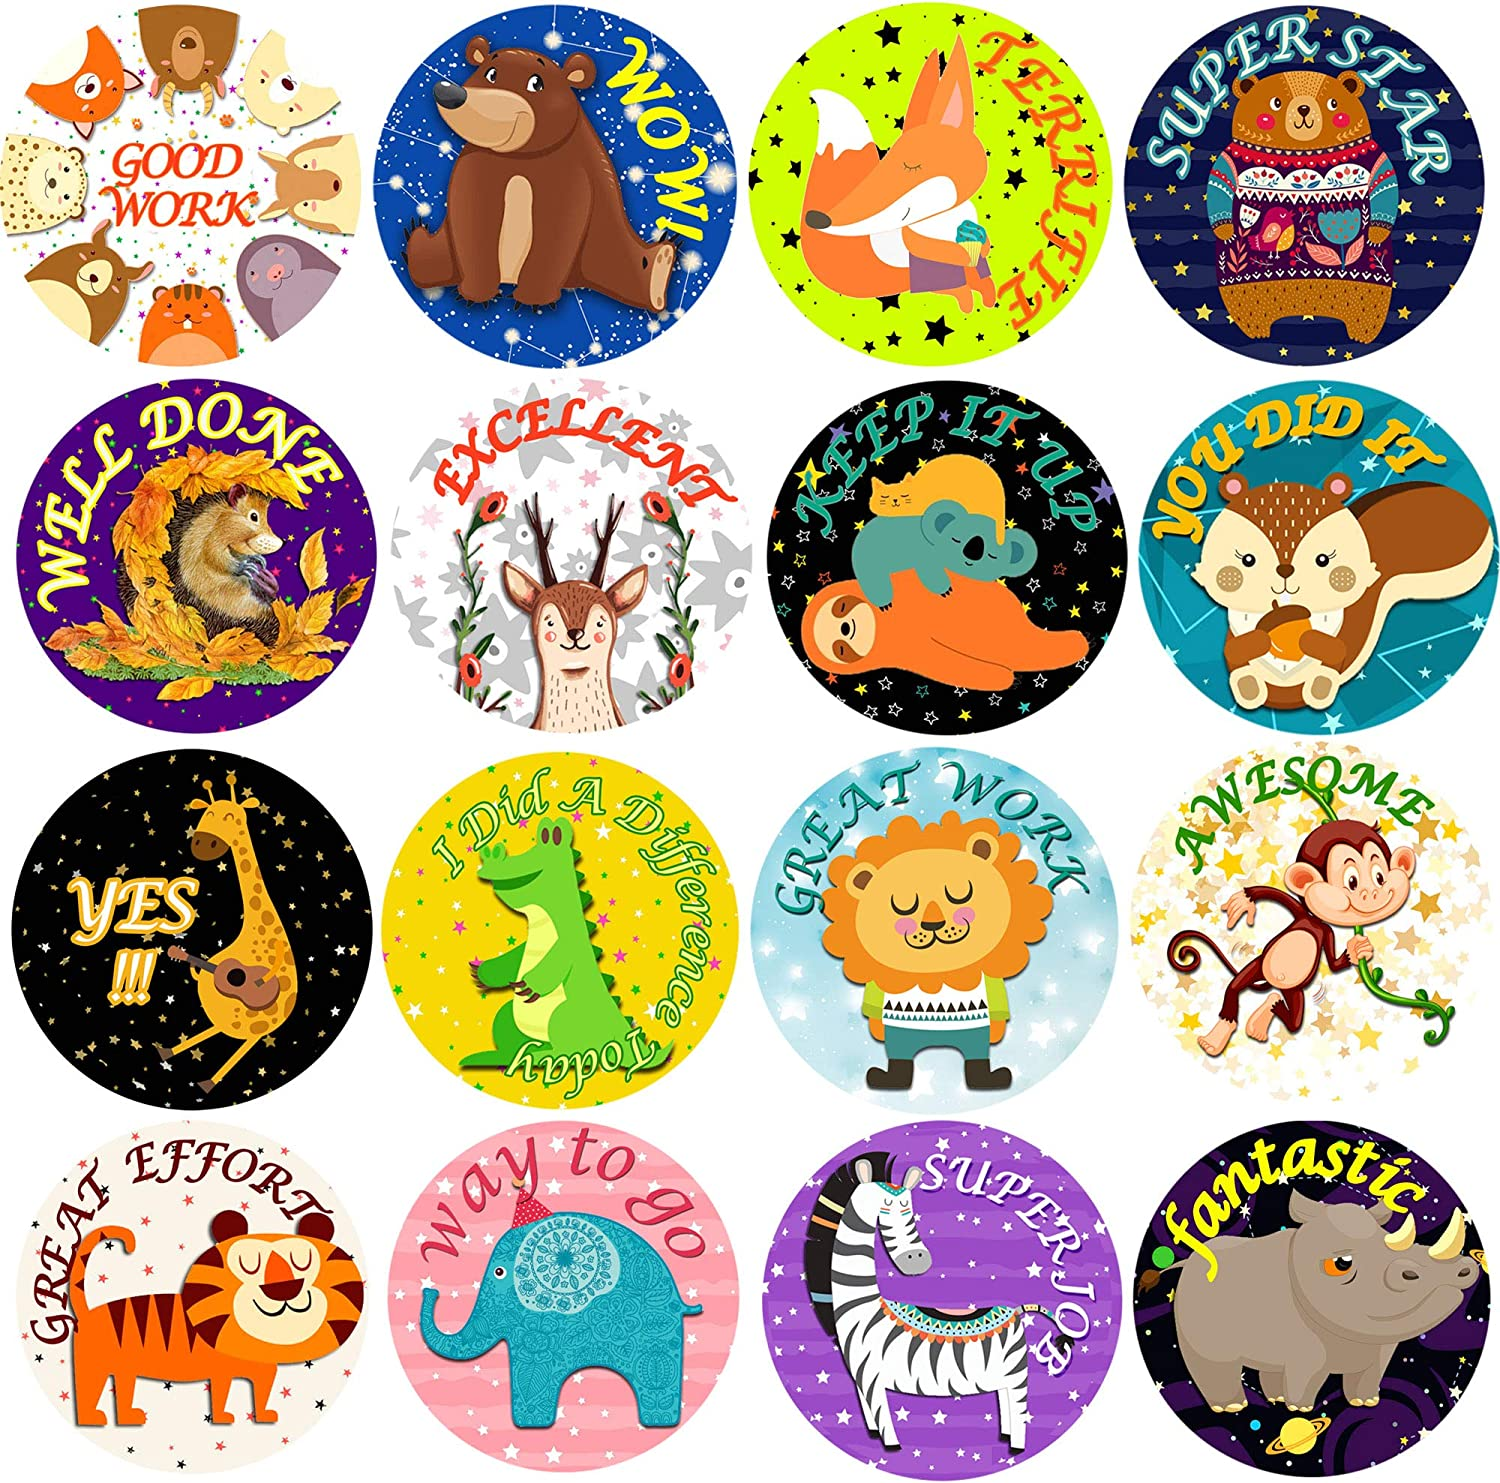 800Pcs Animal Reward Stickers for Kids - 2 Rolls 1-3/5 Inch Self Adhesive Positive Words Incentive Sticker Label Animal Shape Wall Decals for Teacher Classroom Supplies and School Favor, 16 Styles